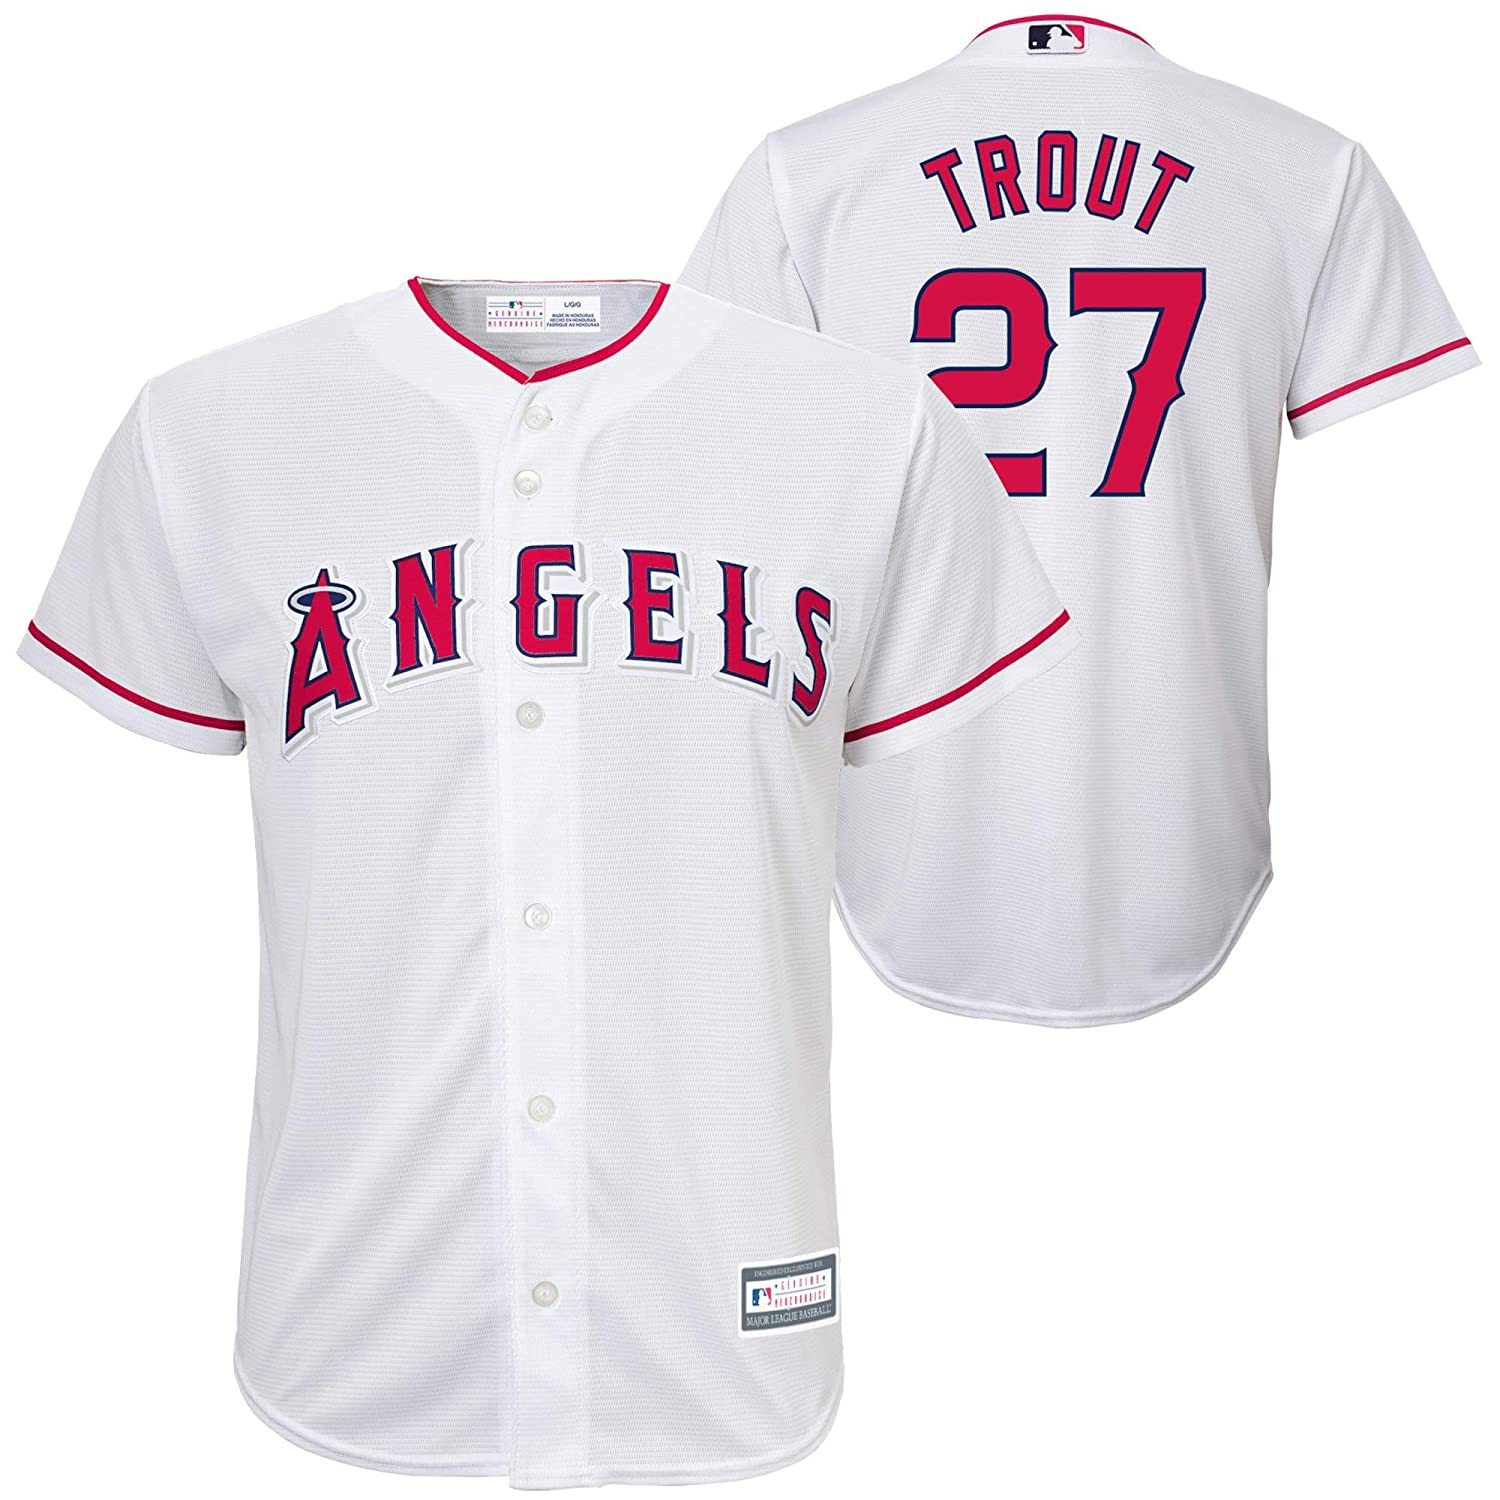 1e3b6aafb Amazon.com  Mike Trout Los Angeles Angels White MLB Youth Replica Jersey  (Large 14 16)  Clothing